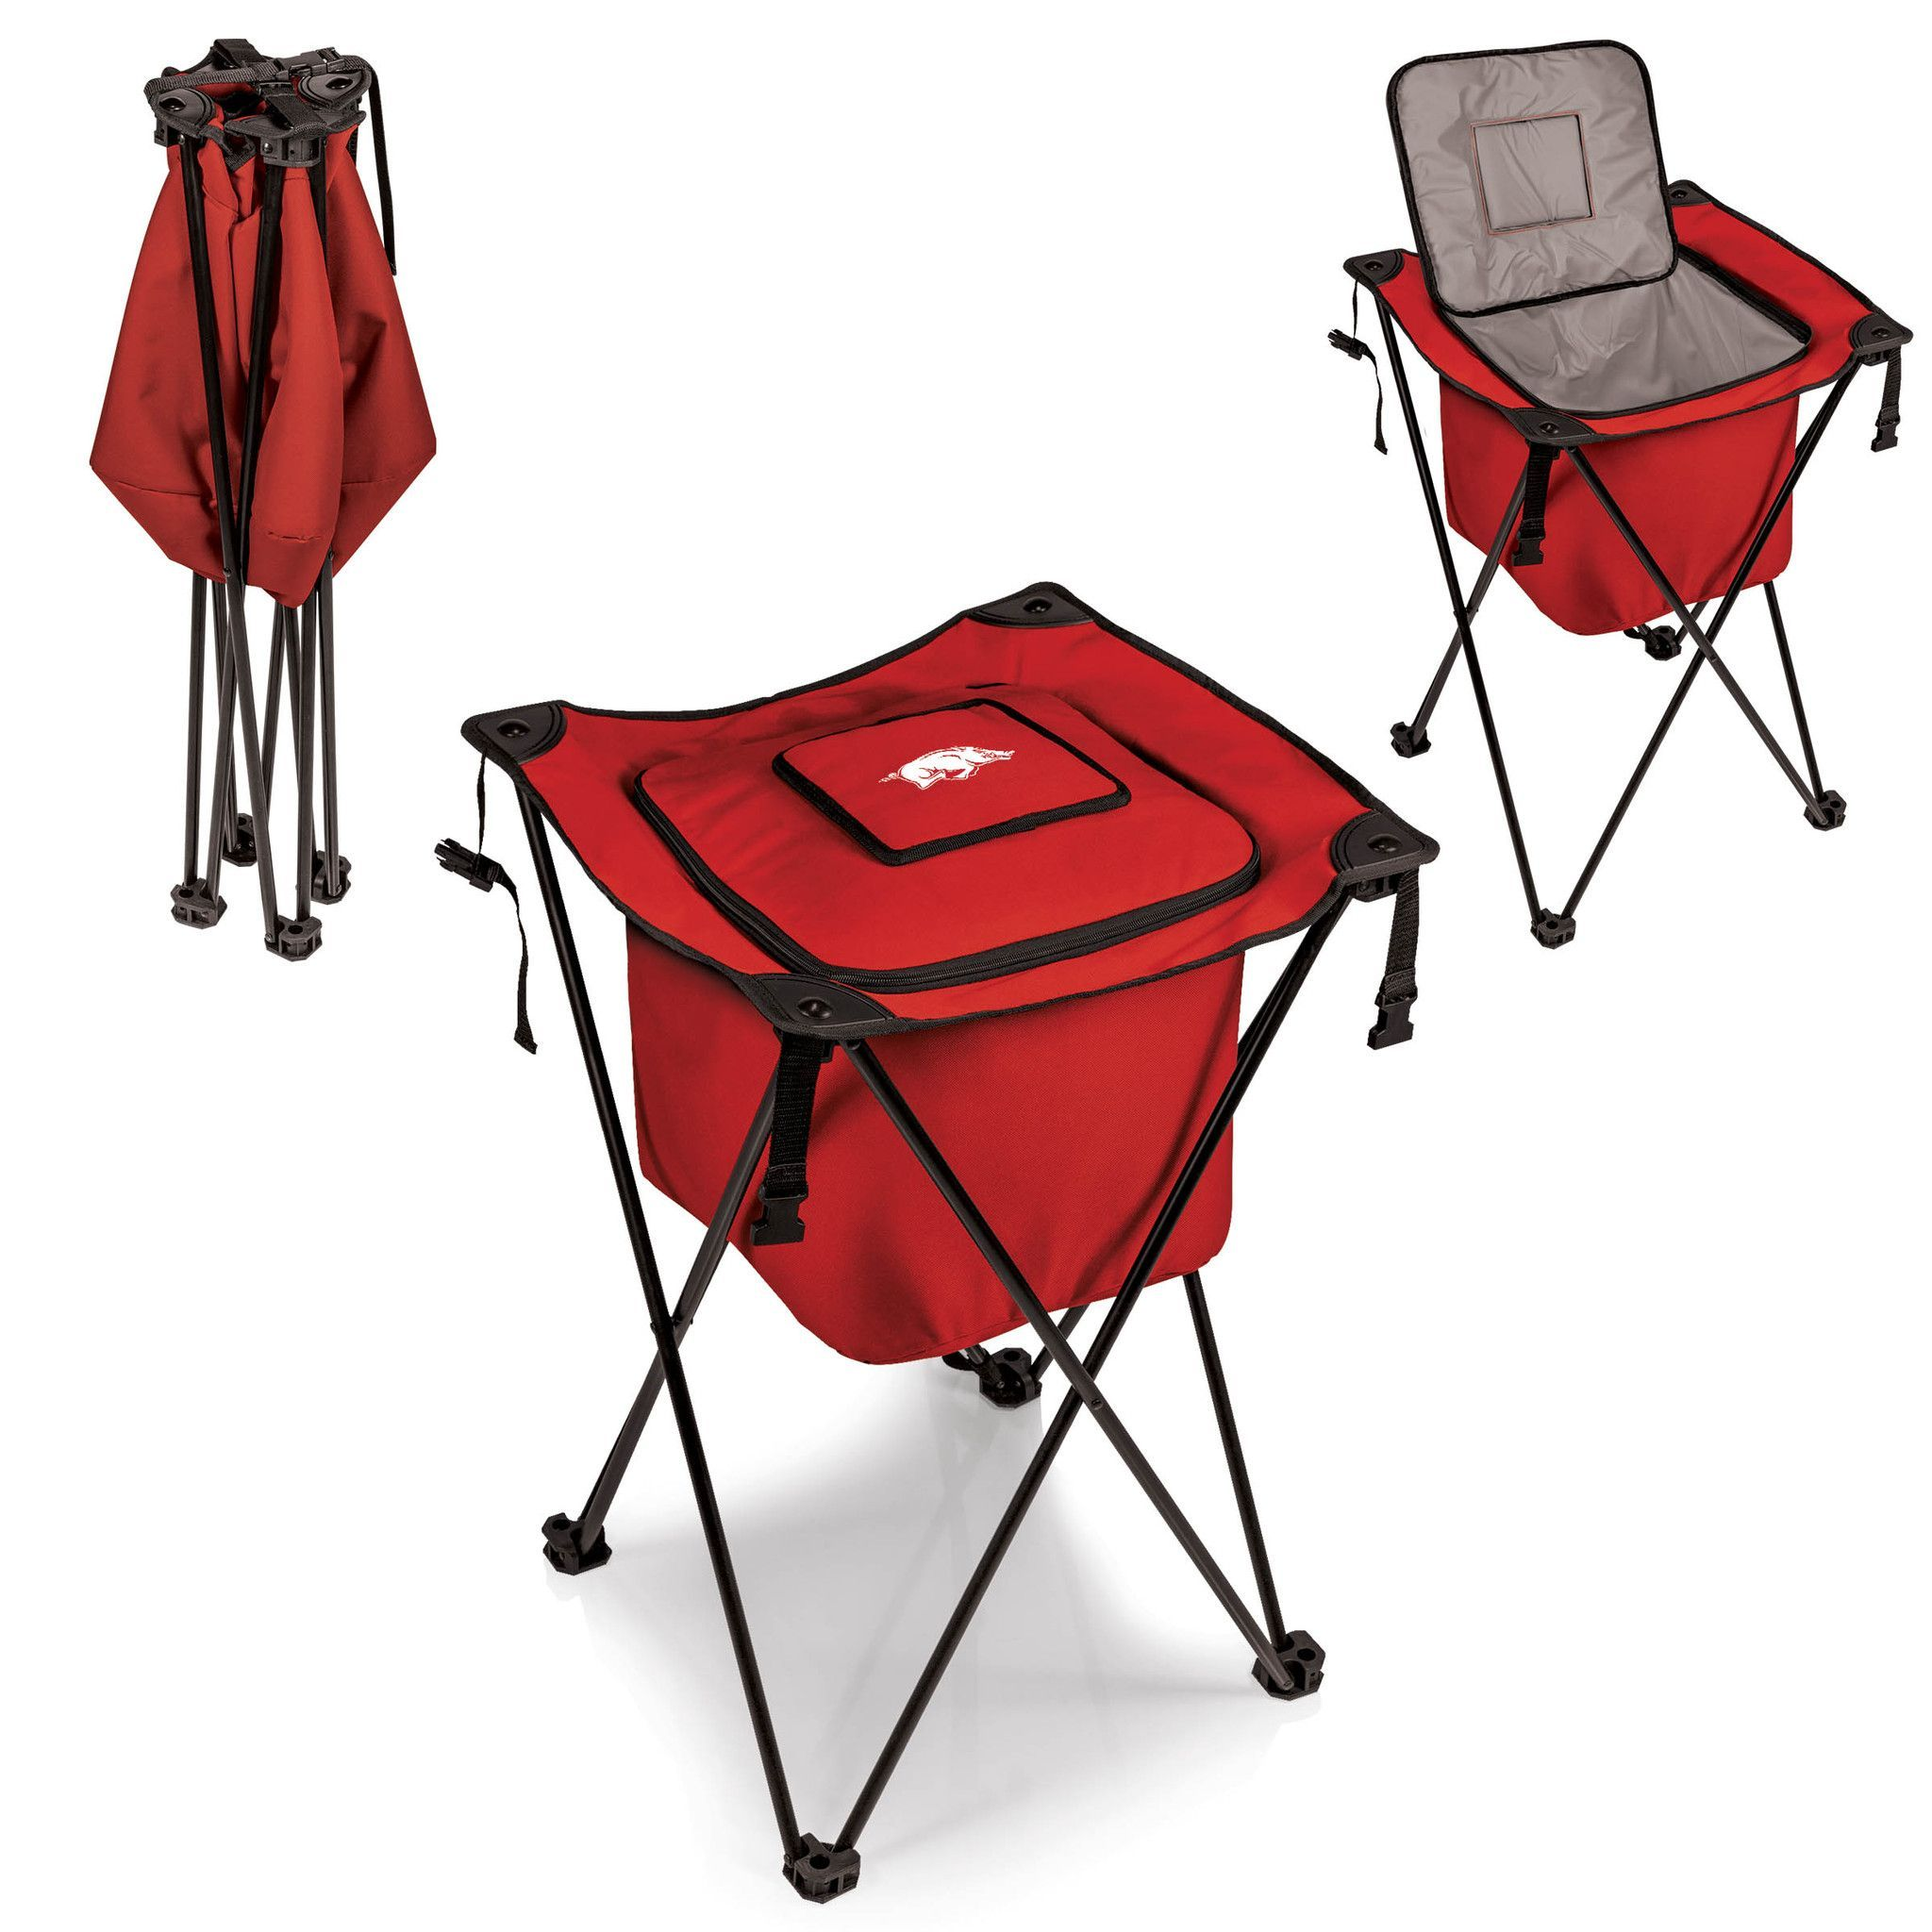 The Red Arkansas Razorbacks Sidekick Cooler With Stand